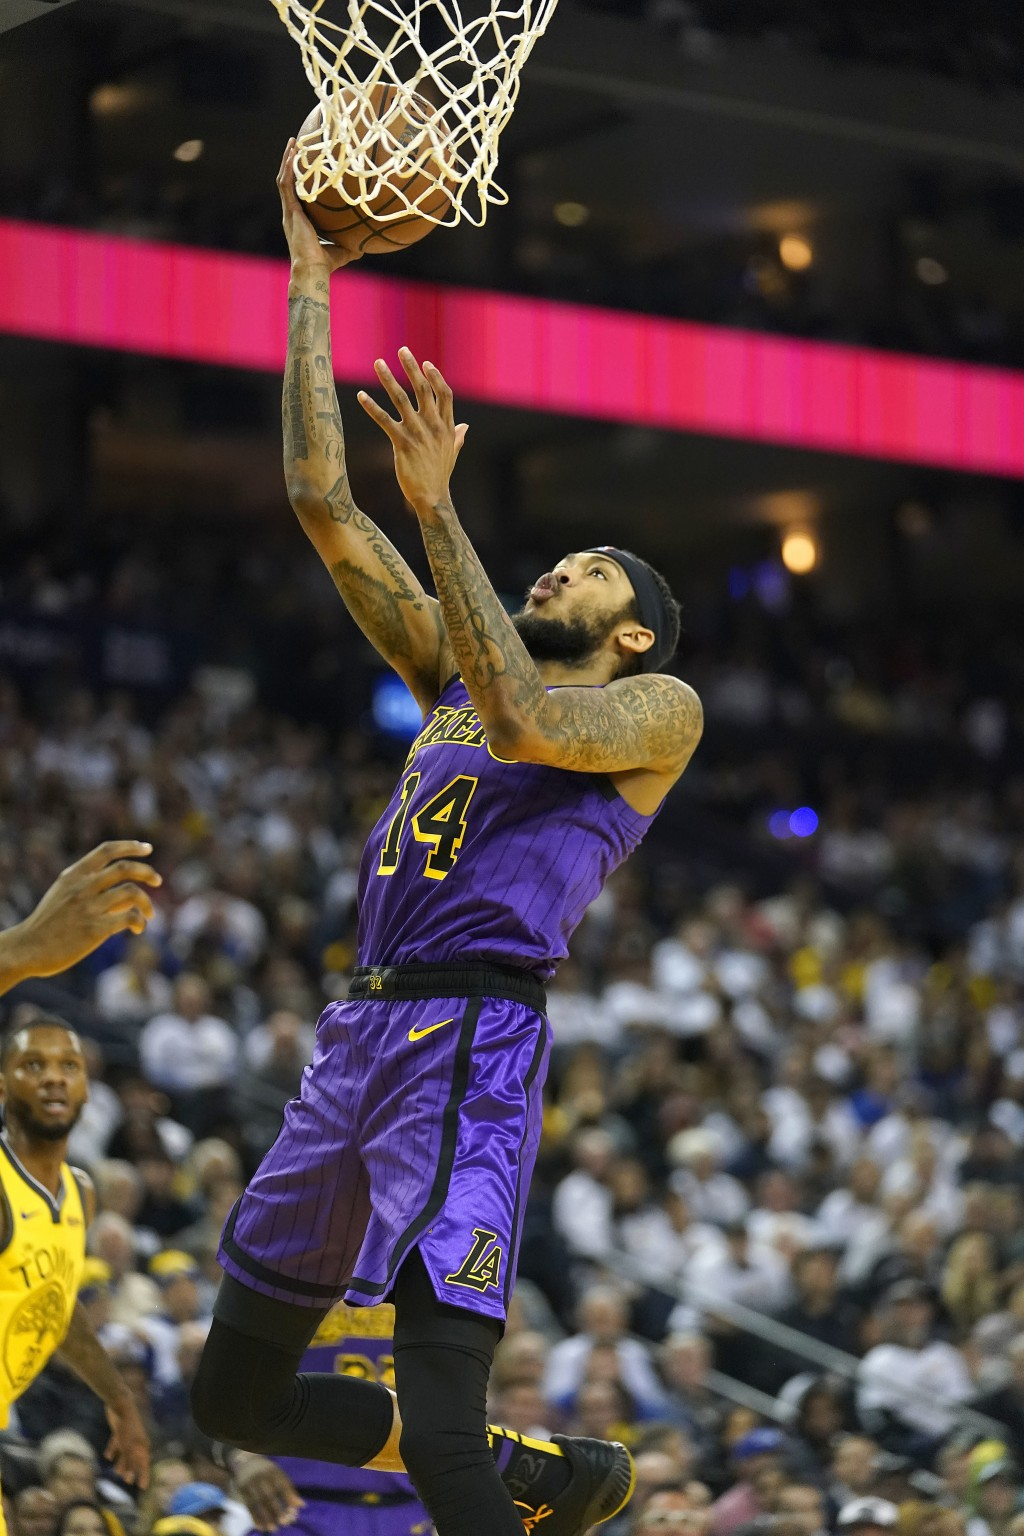 Los Angeles Lakers forward Brandon Ingram (14) drives to the basket against the Golden State Warriors during the first half of an NBA basketball game